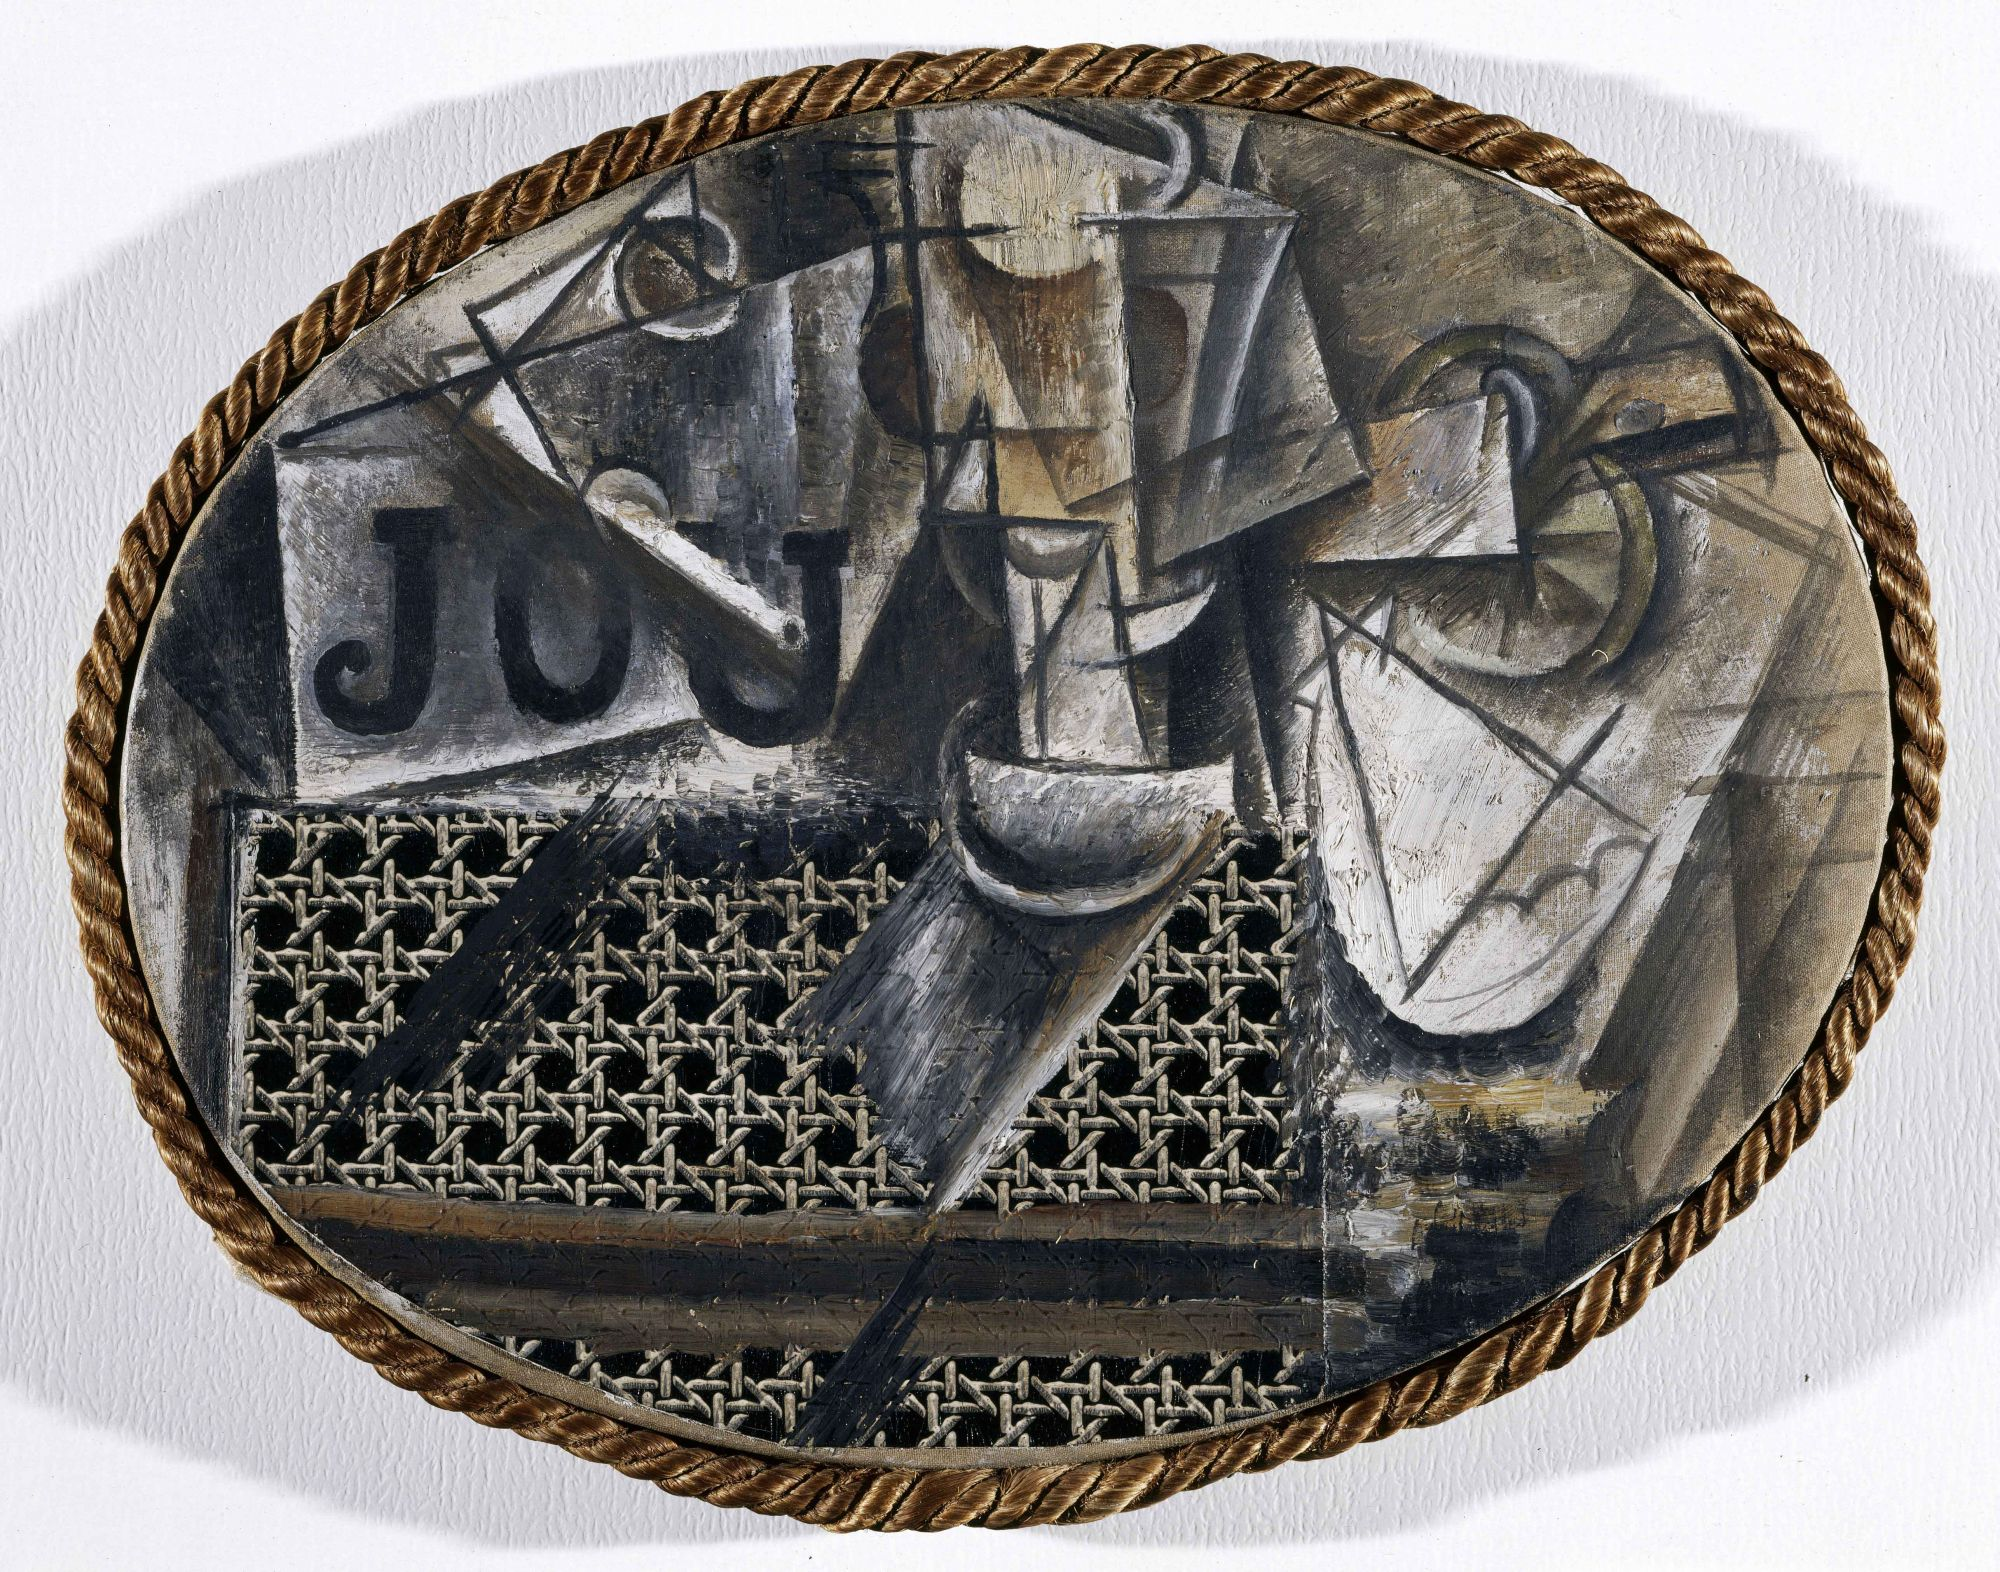 L homme la guitare panorama de l 39 art - Picasso nature morte a la chaise cannee ...